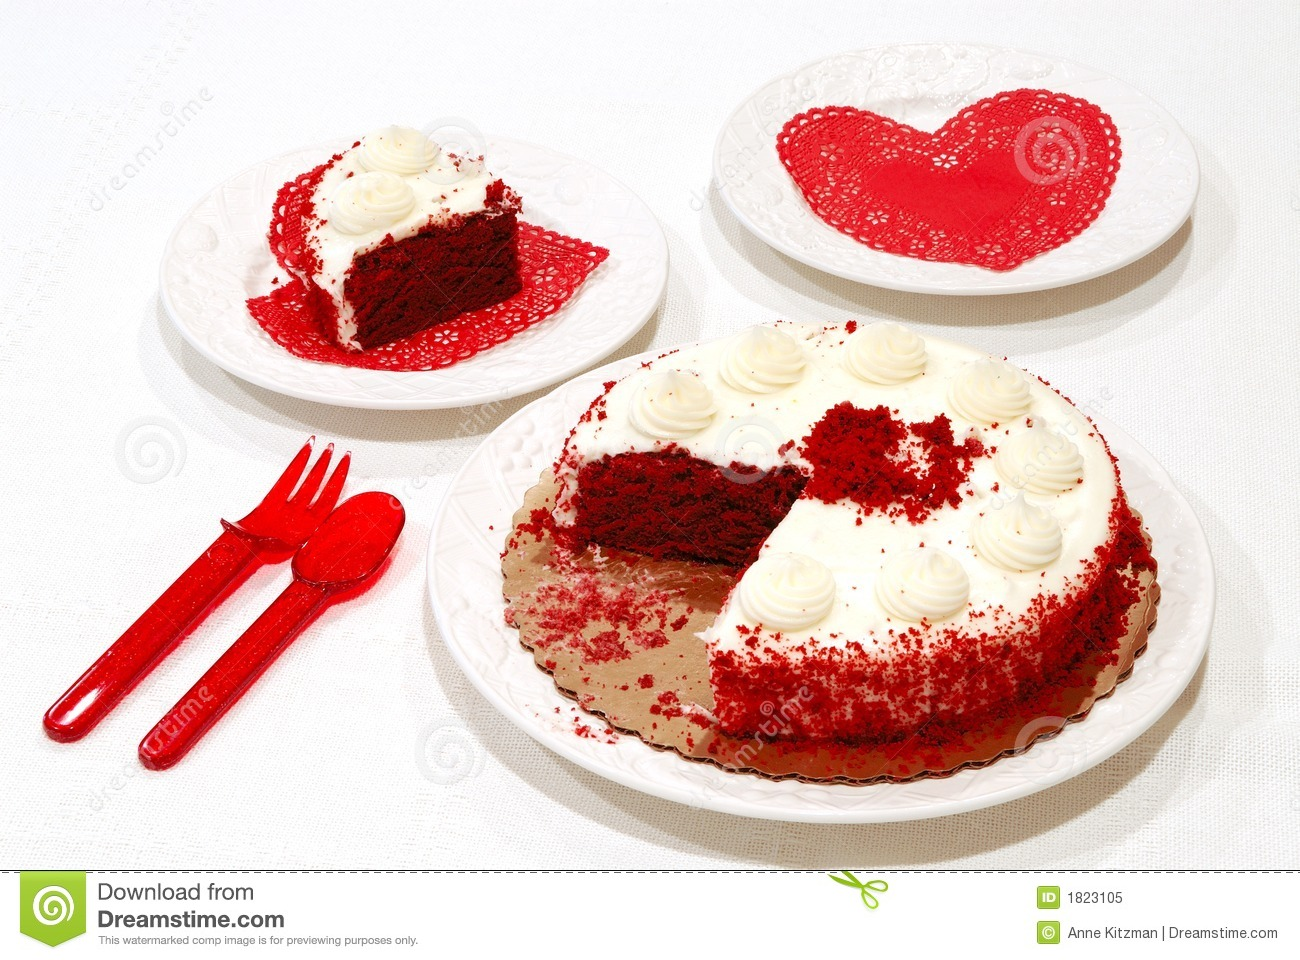 Marvelous Valentine Birthday Cake Stock Image Image Of Valentine 1823105 Funny Birthday Cards Online Fluifree Goldxyz